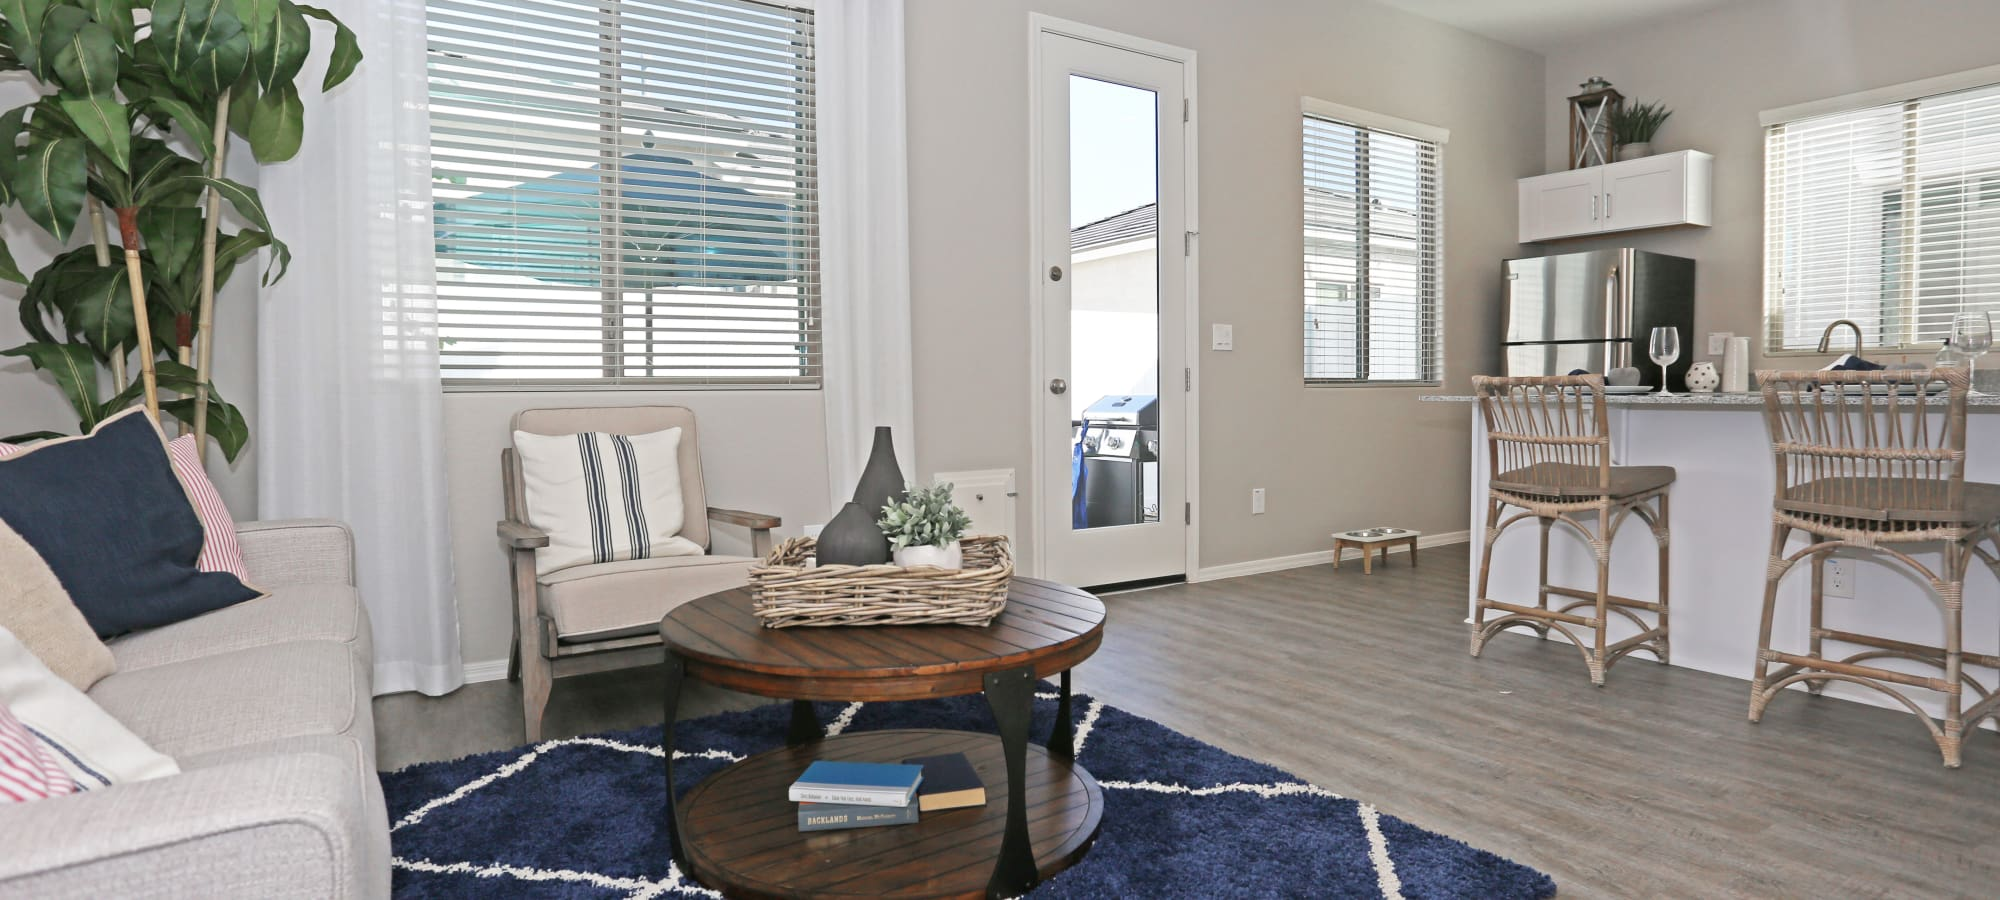 Comfortable living room in model home at Christopher Todd Communities On Camelback in Litchfield Park, Arizona